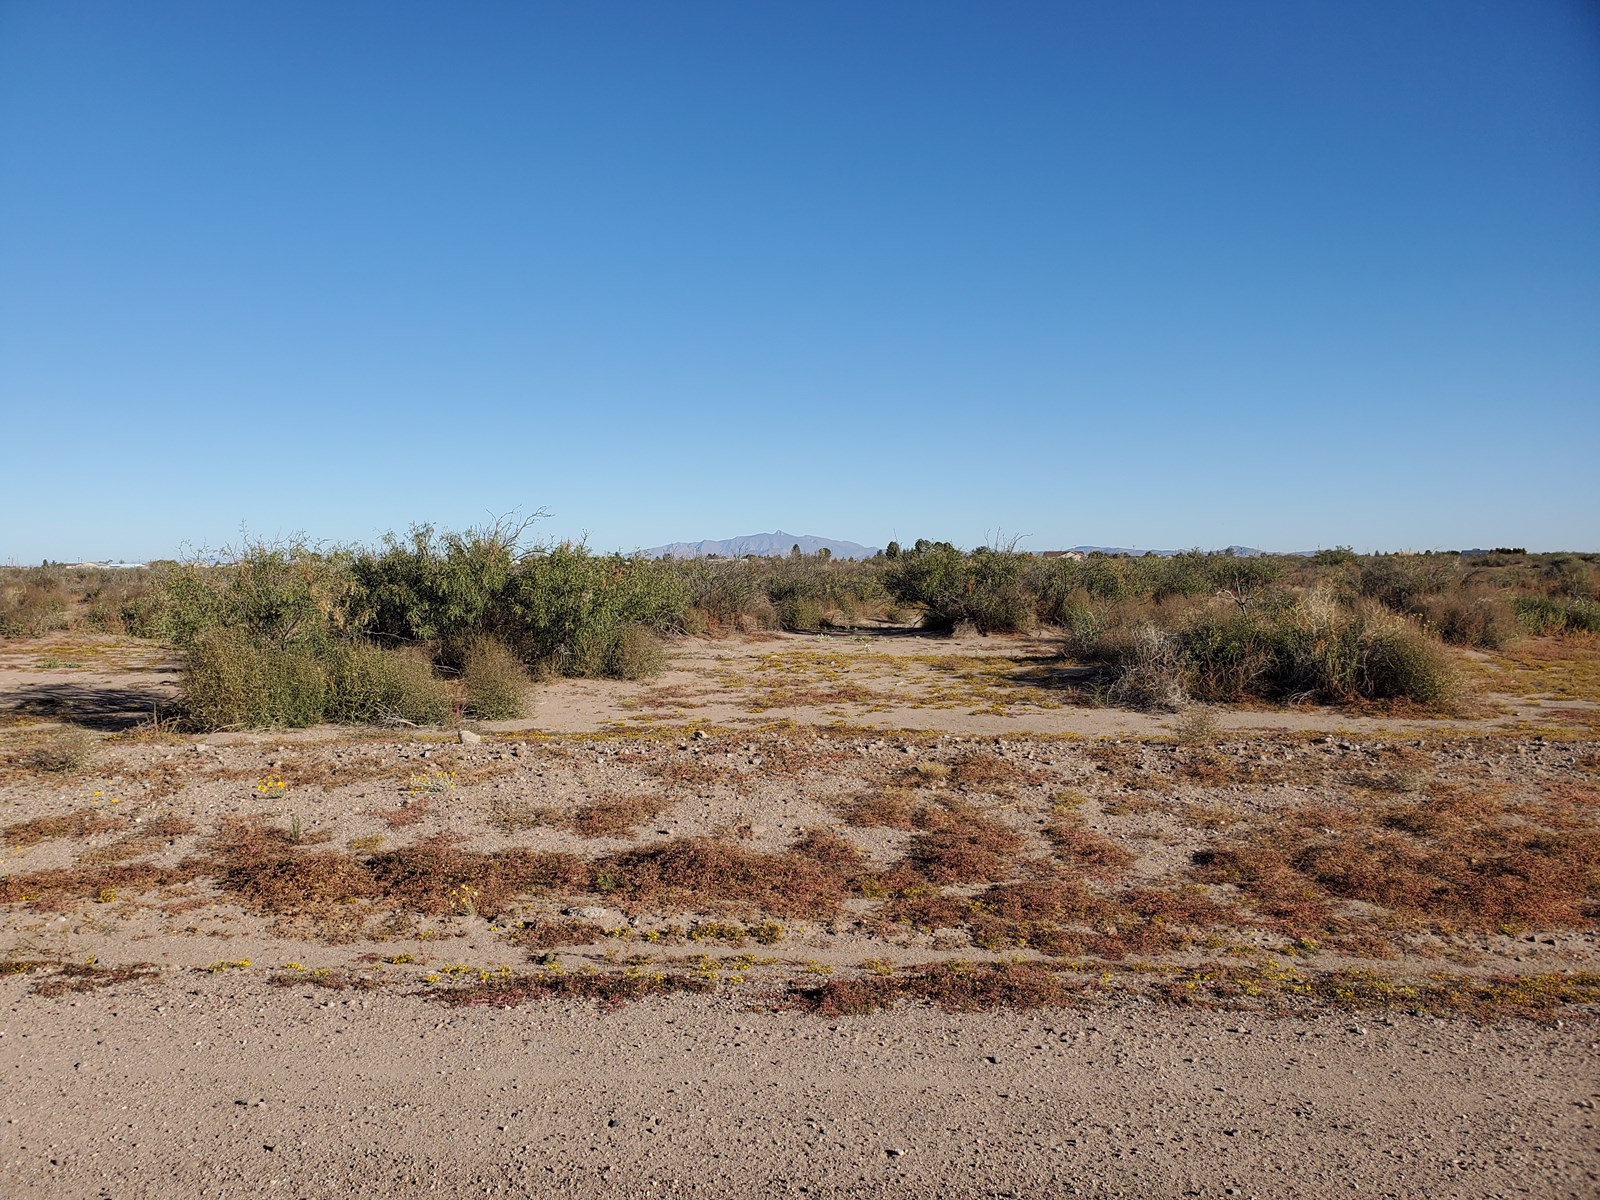 Acreage for sale in Deming NM